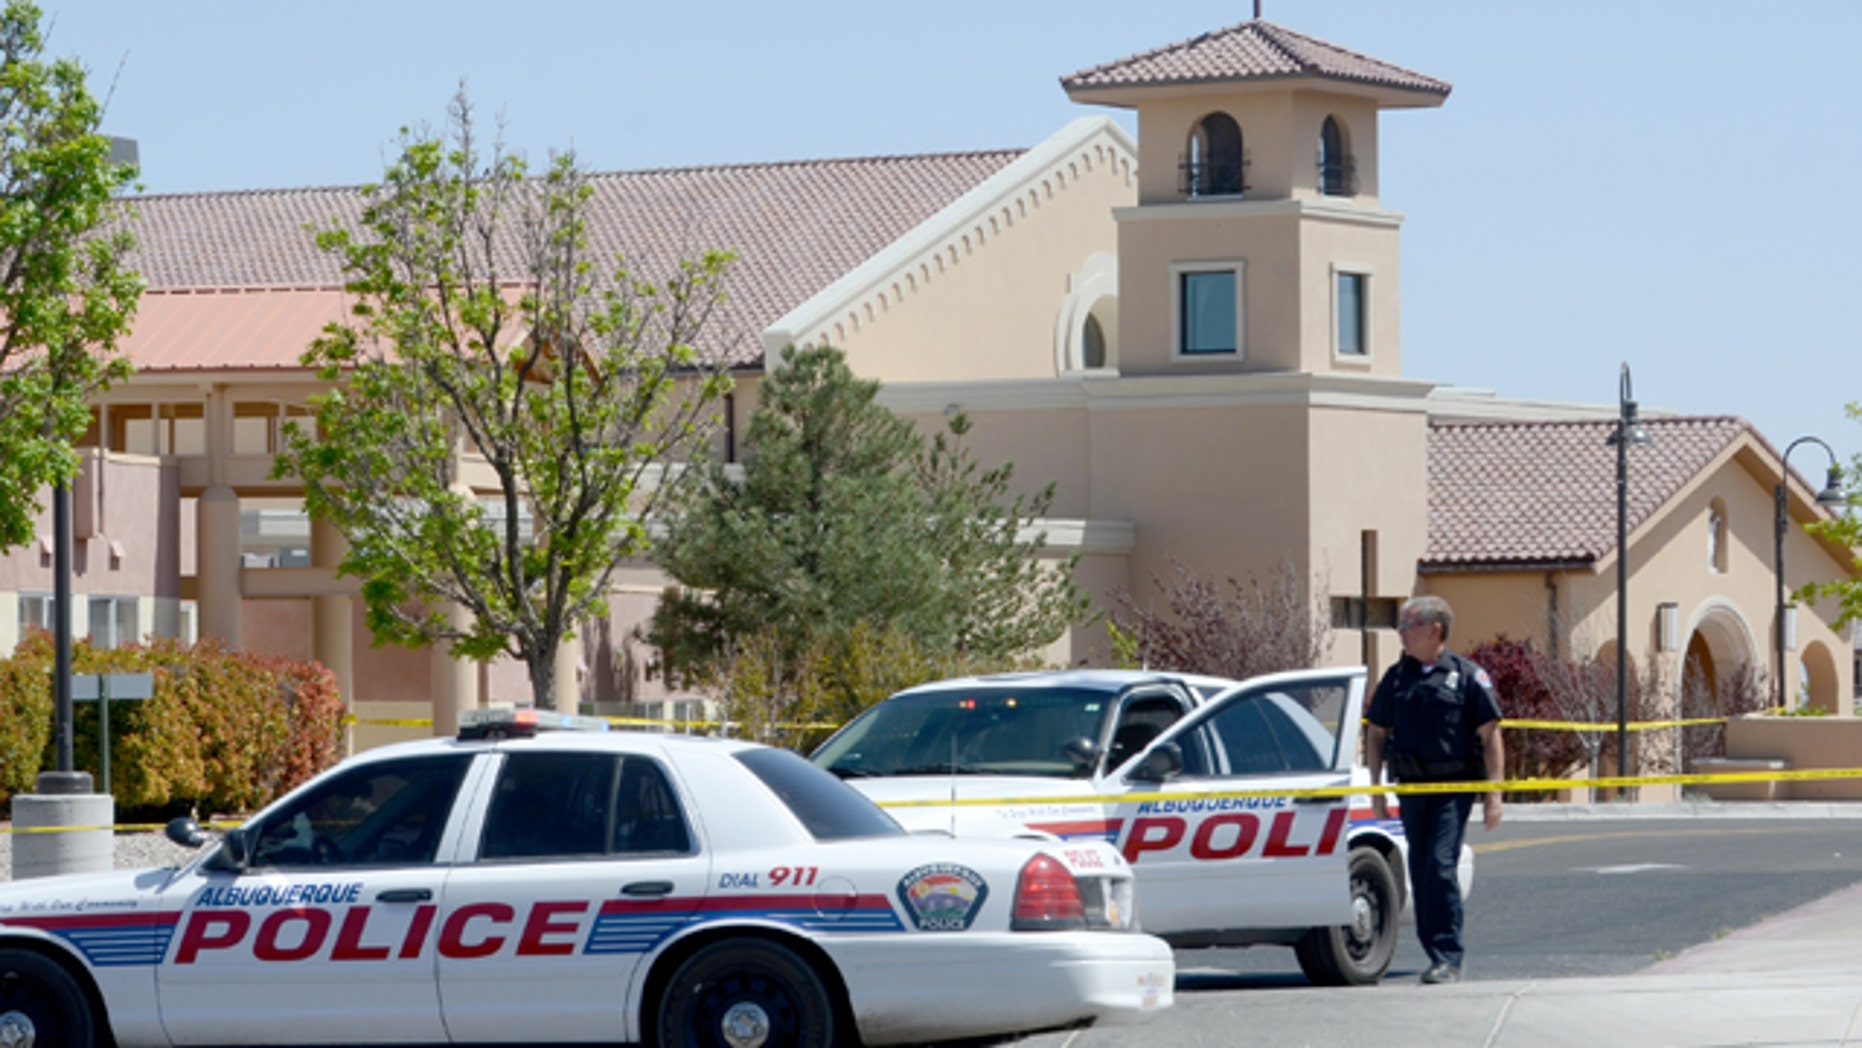 April 28, 2013: An Albuquerque Police officer walks behind the tape at St. Jude Thaddeus Catholic Church.